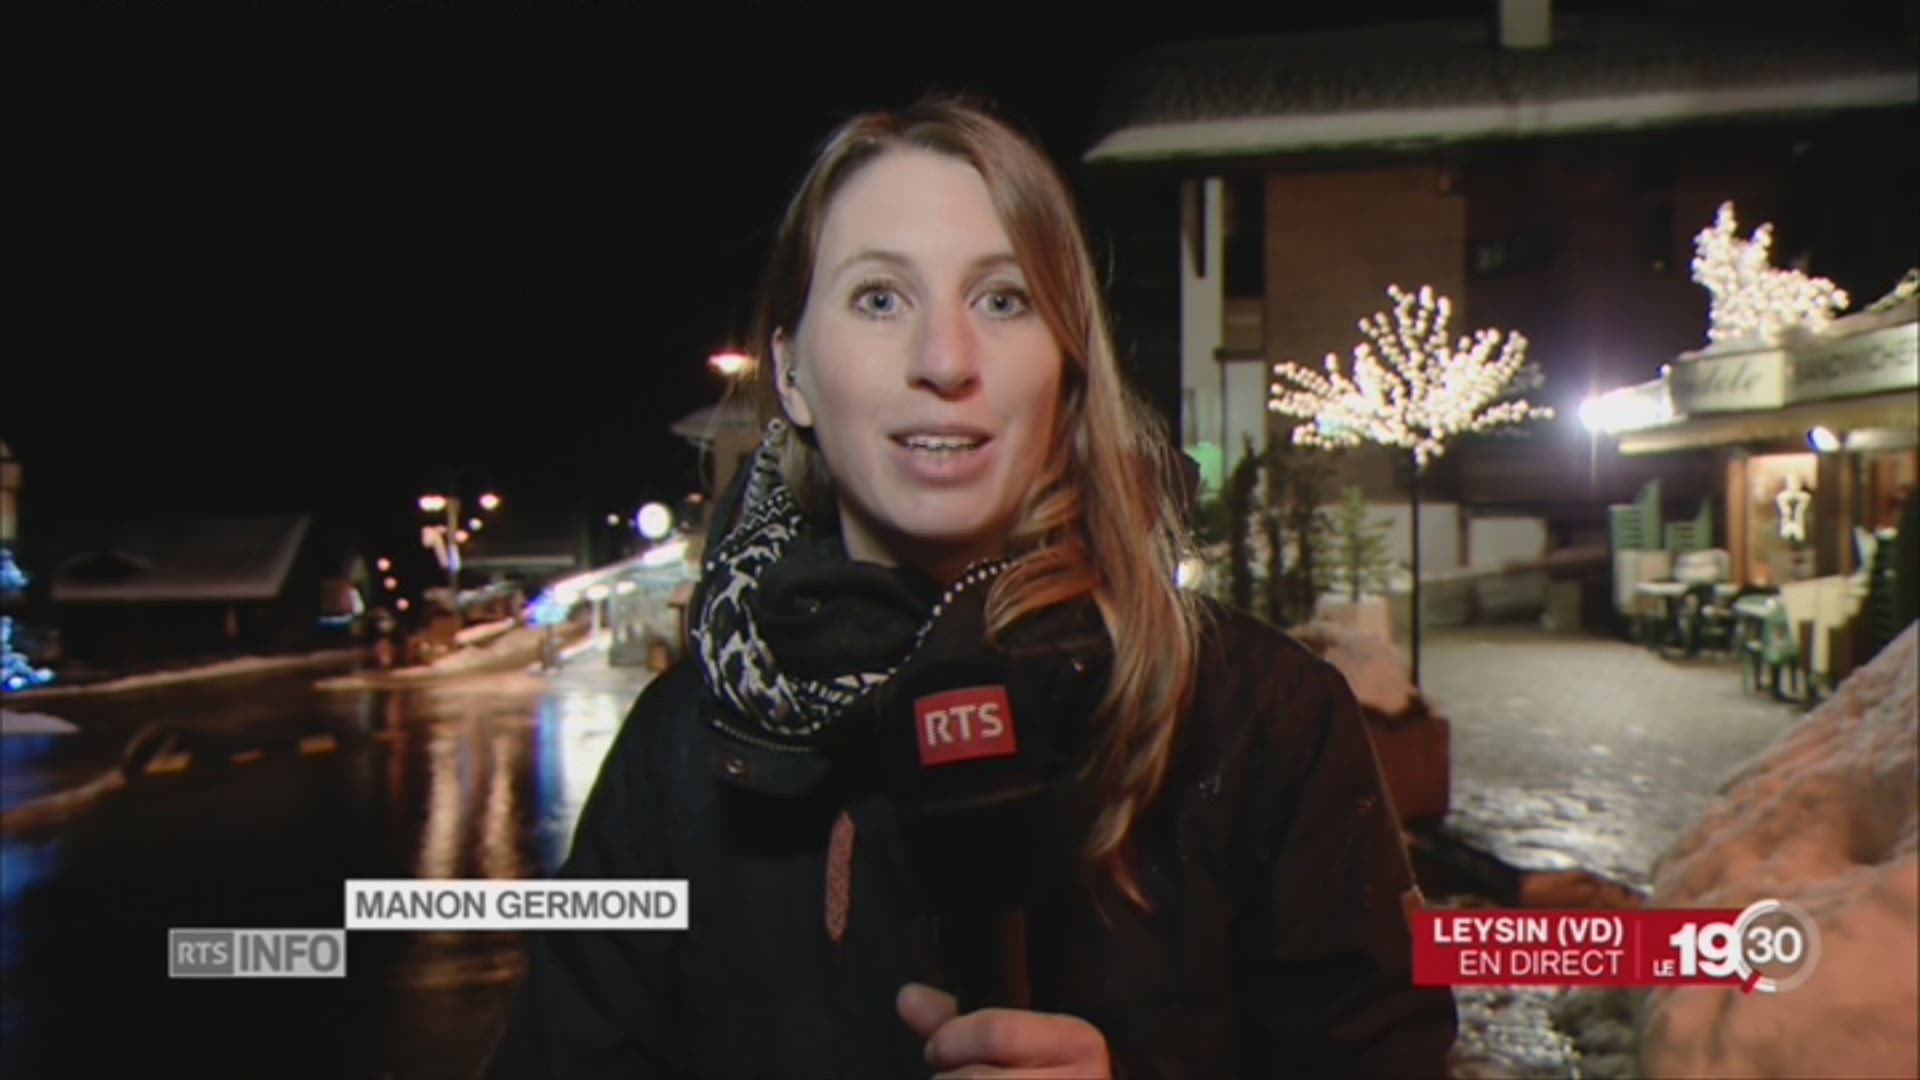 Bilan des stations de ski: le point avec Manon Germond, à Leysin (VD)